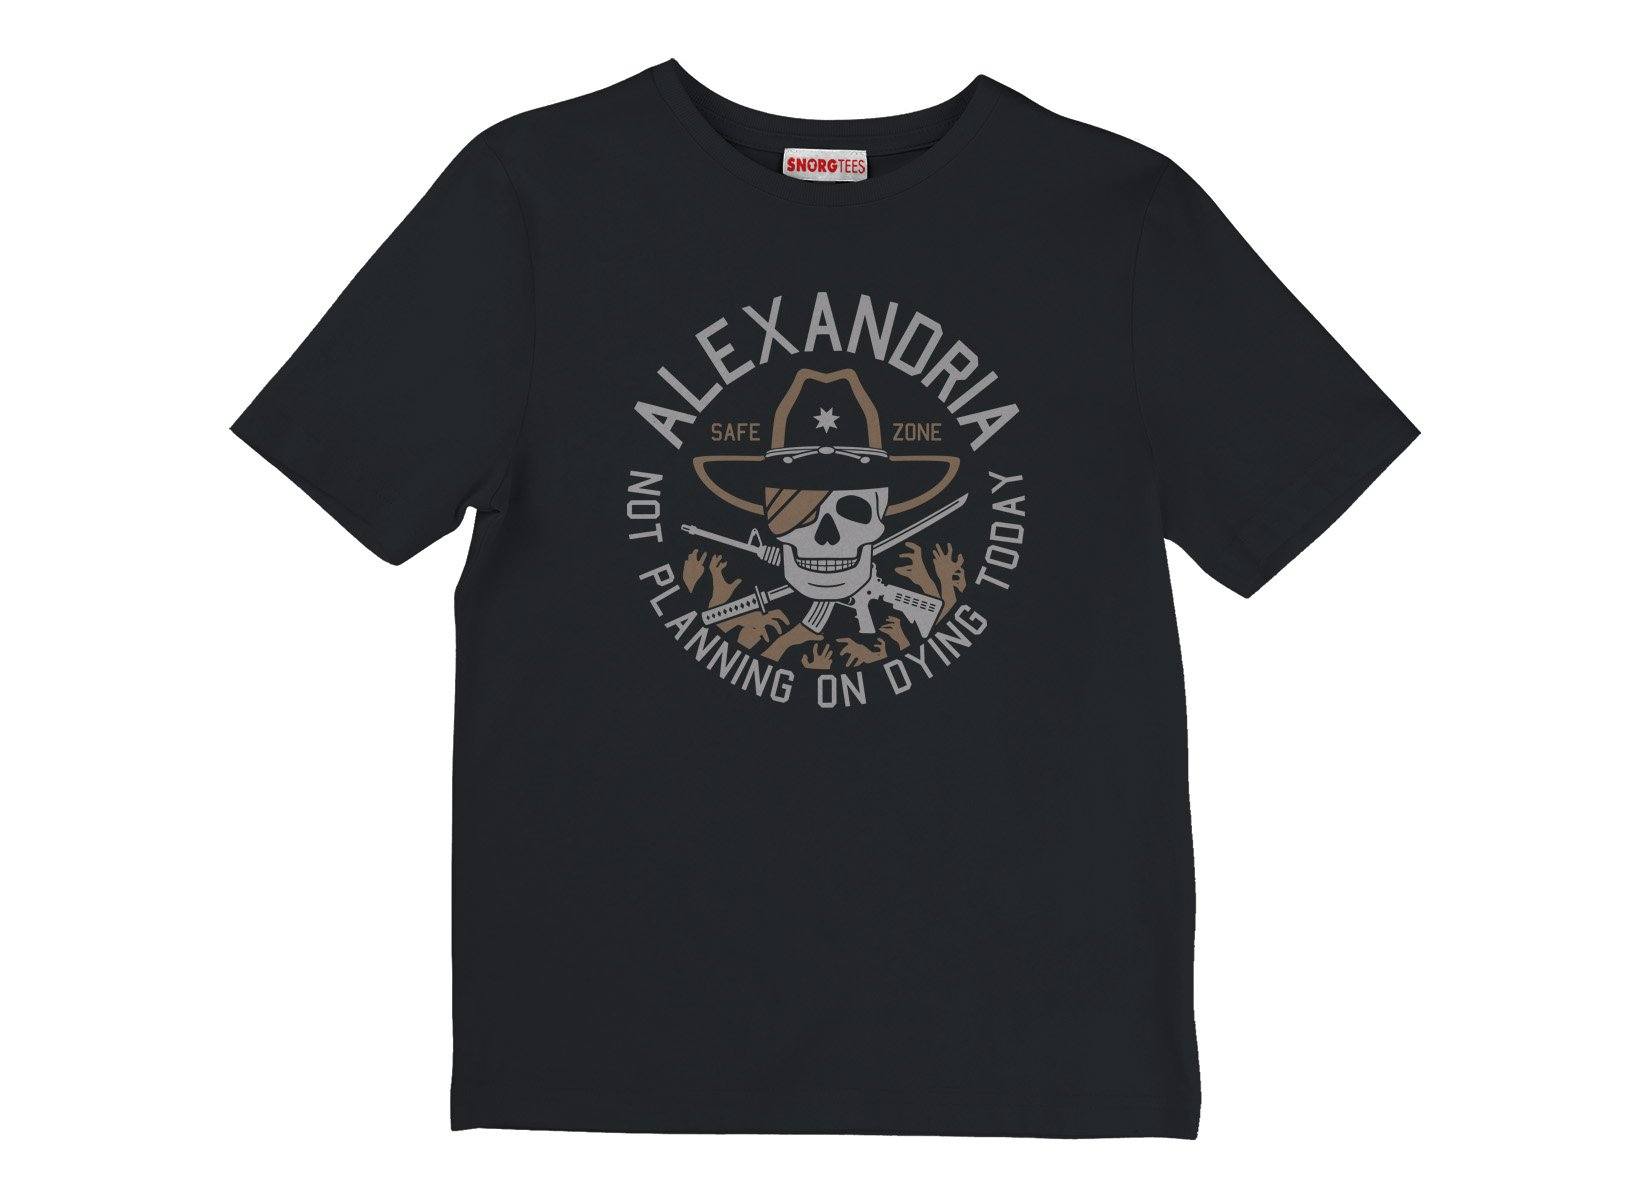 Alexandria Safe Zone on Kids T-Shirt